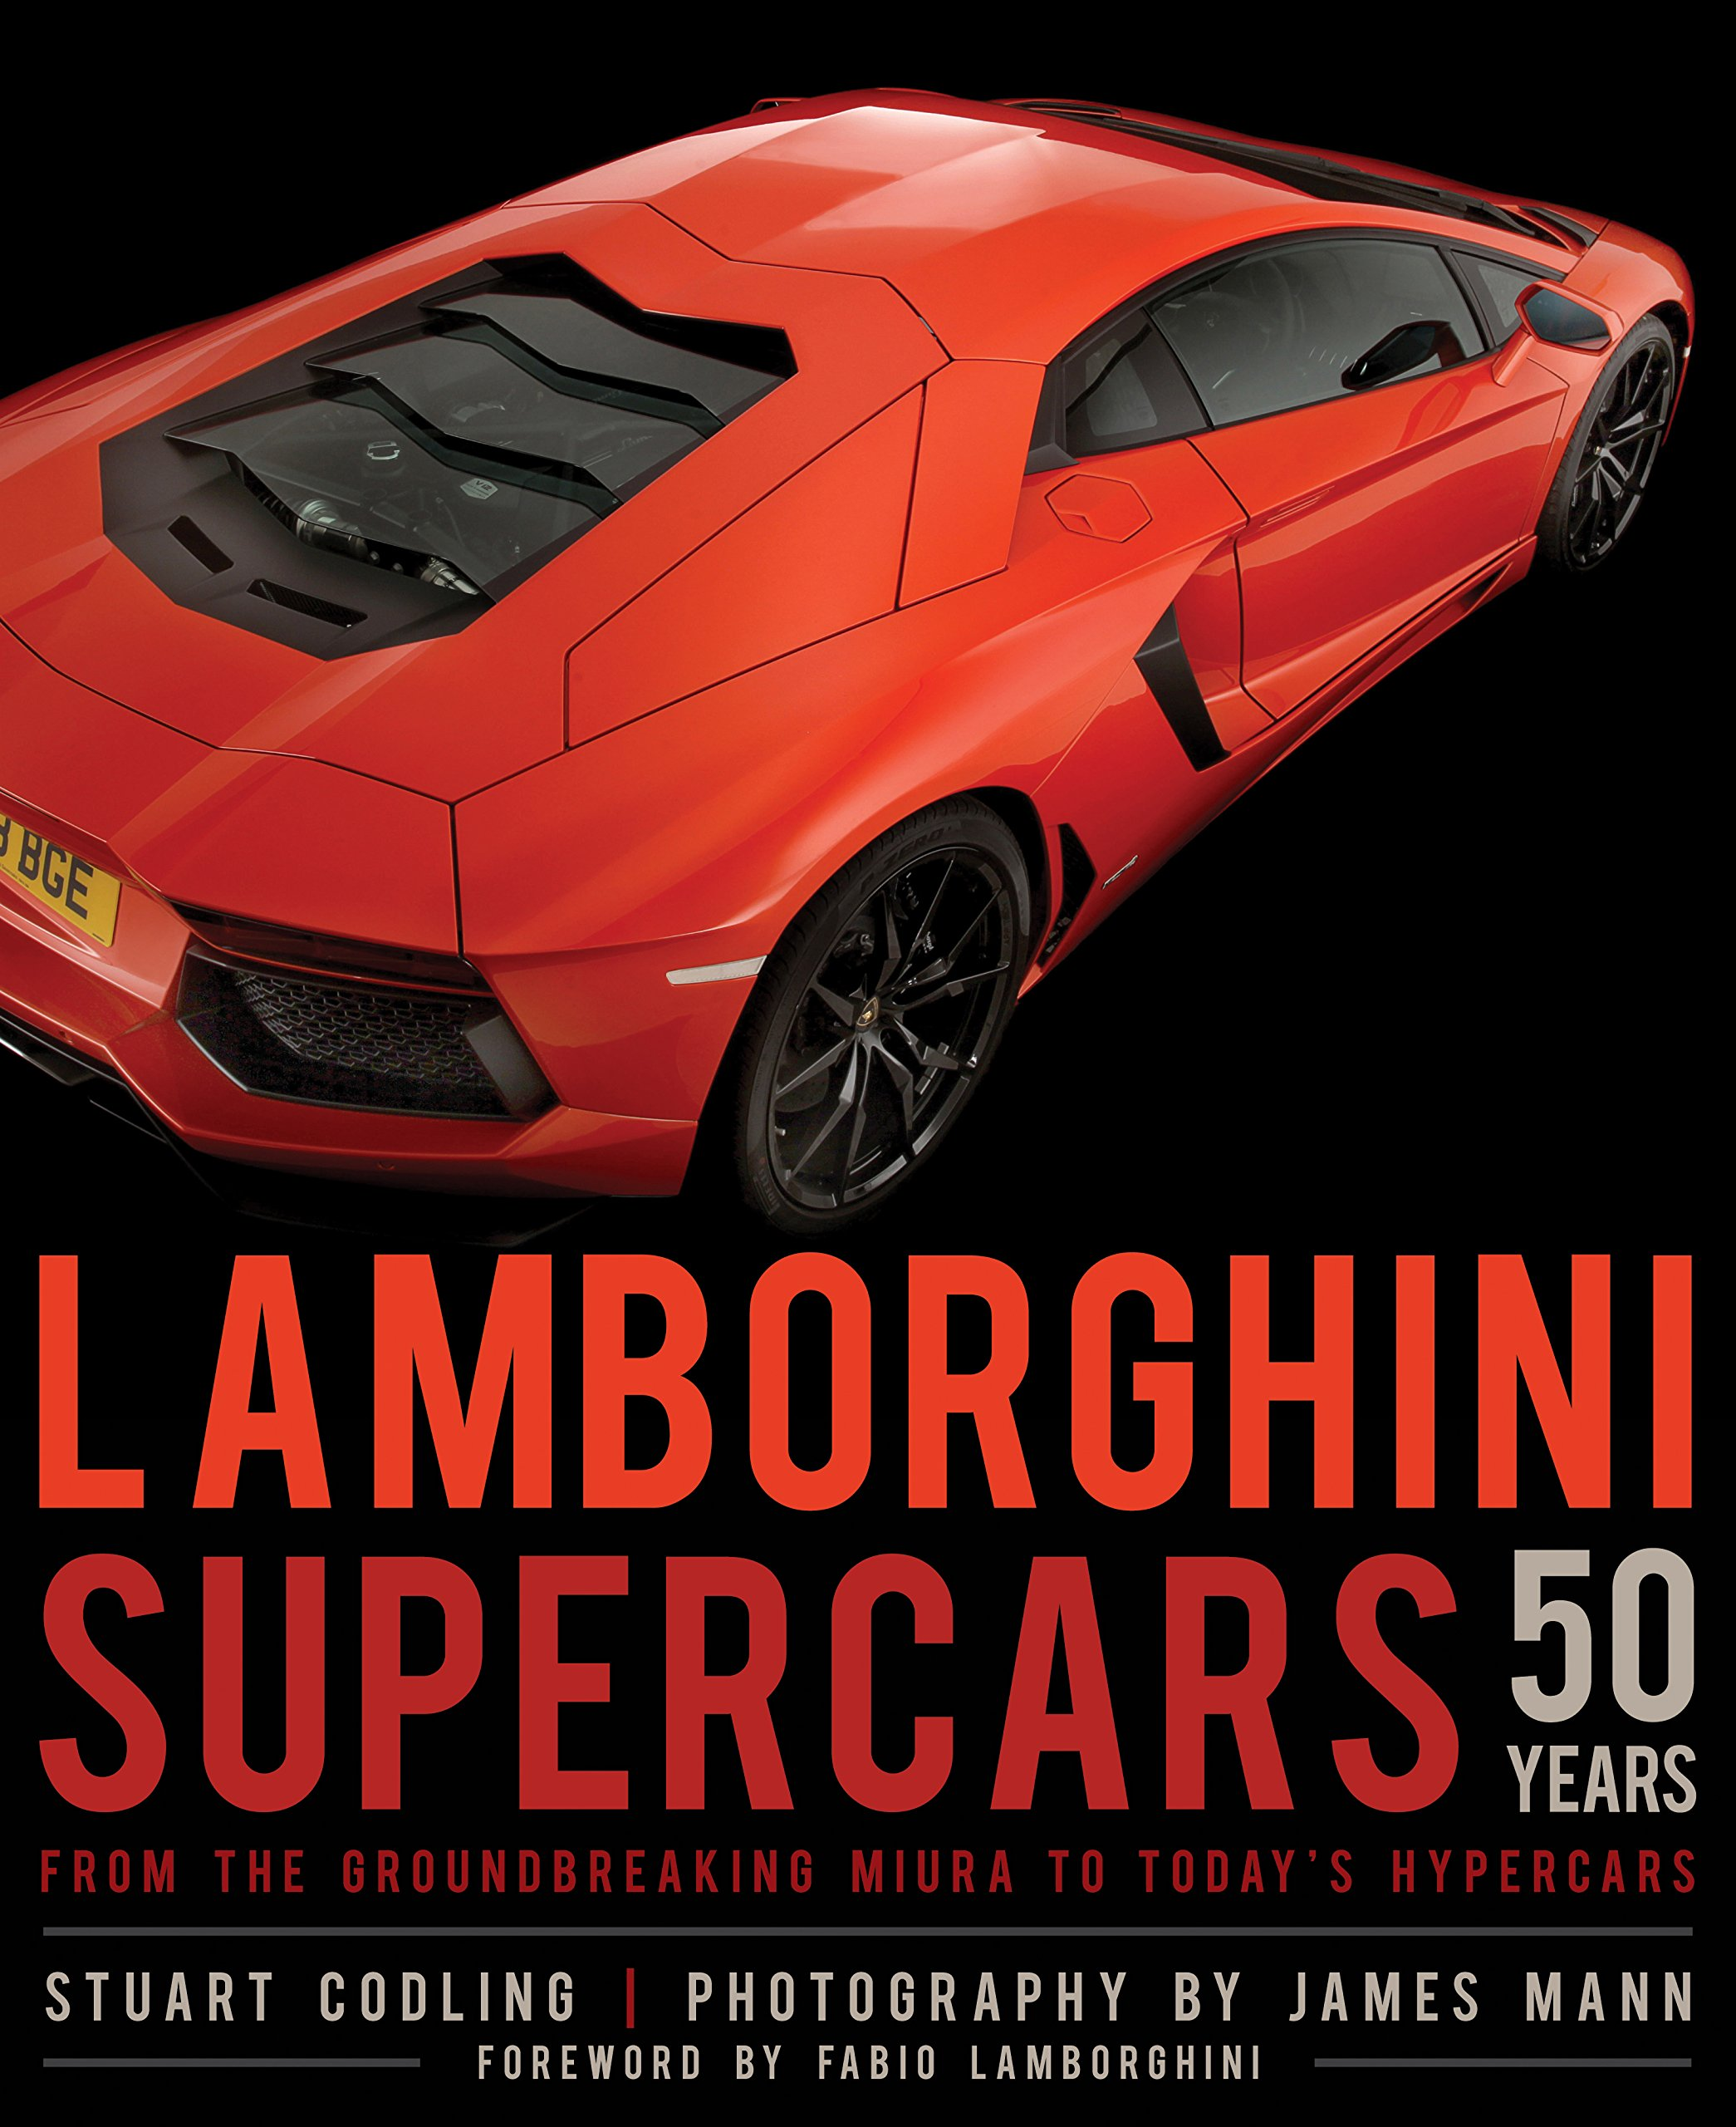 Lamborghini supercars 50 years from the groundbreaking miura to lamborghini supercars 50 years from the groundbreaking miura to todays hypercars foreword by fabio lamborghini stuart codling james mann geotapseo Gallery